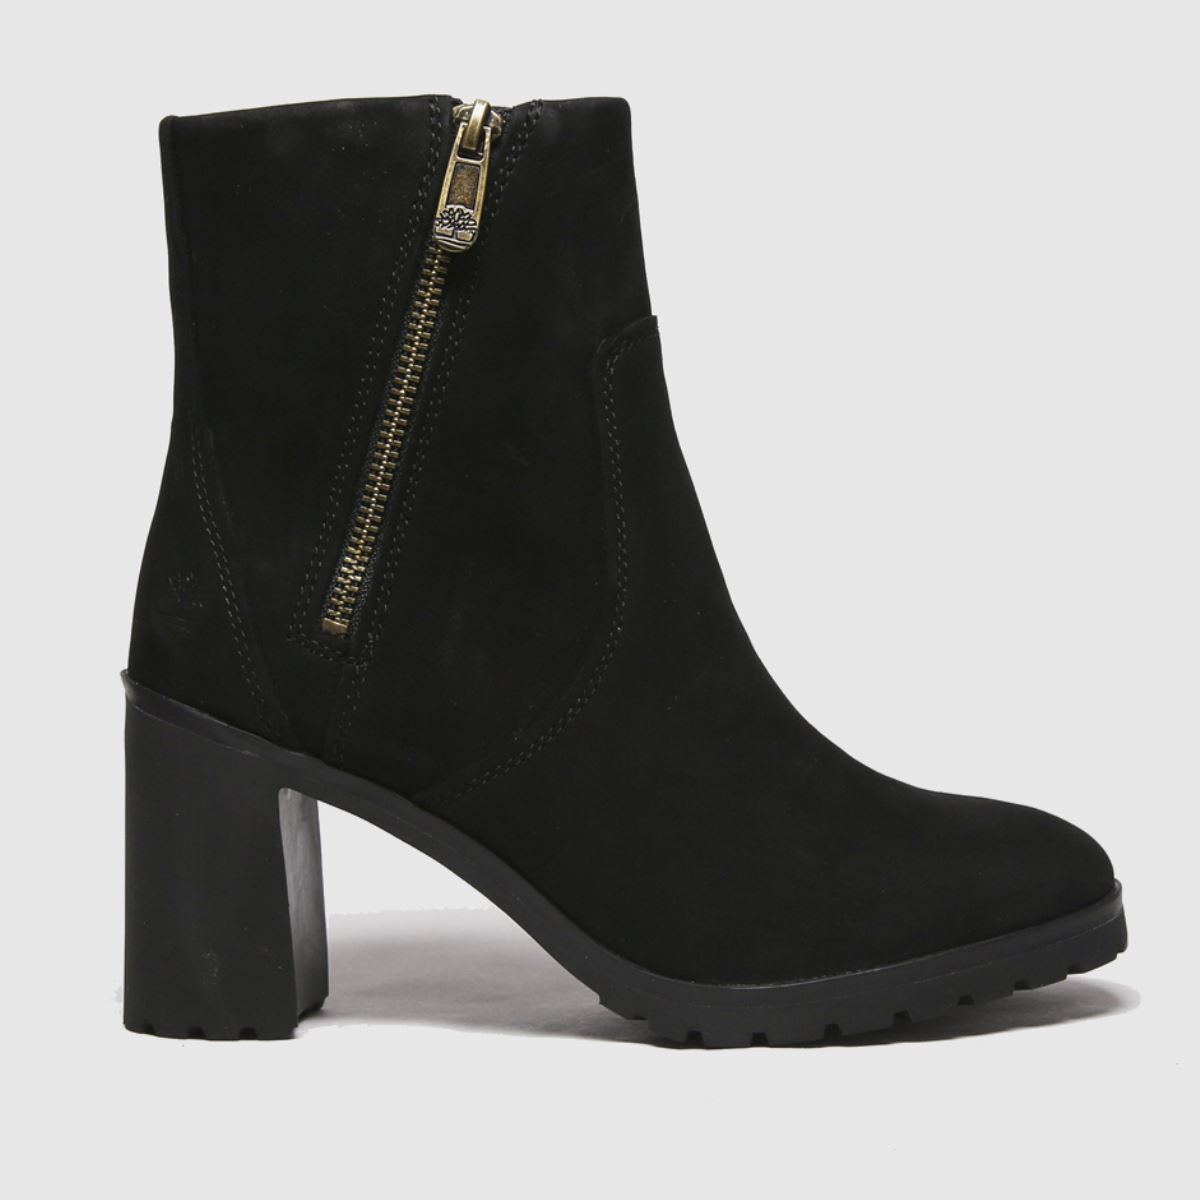 Timberland Black Allington Ankle Boot Boots